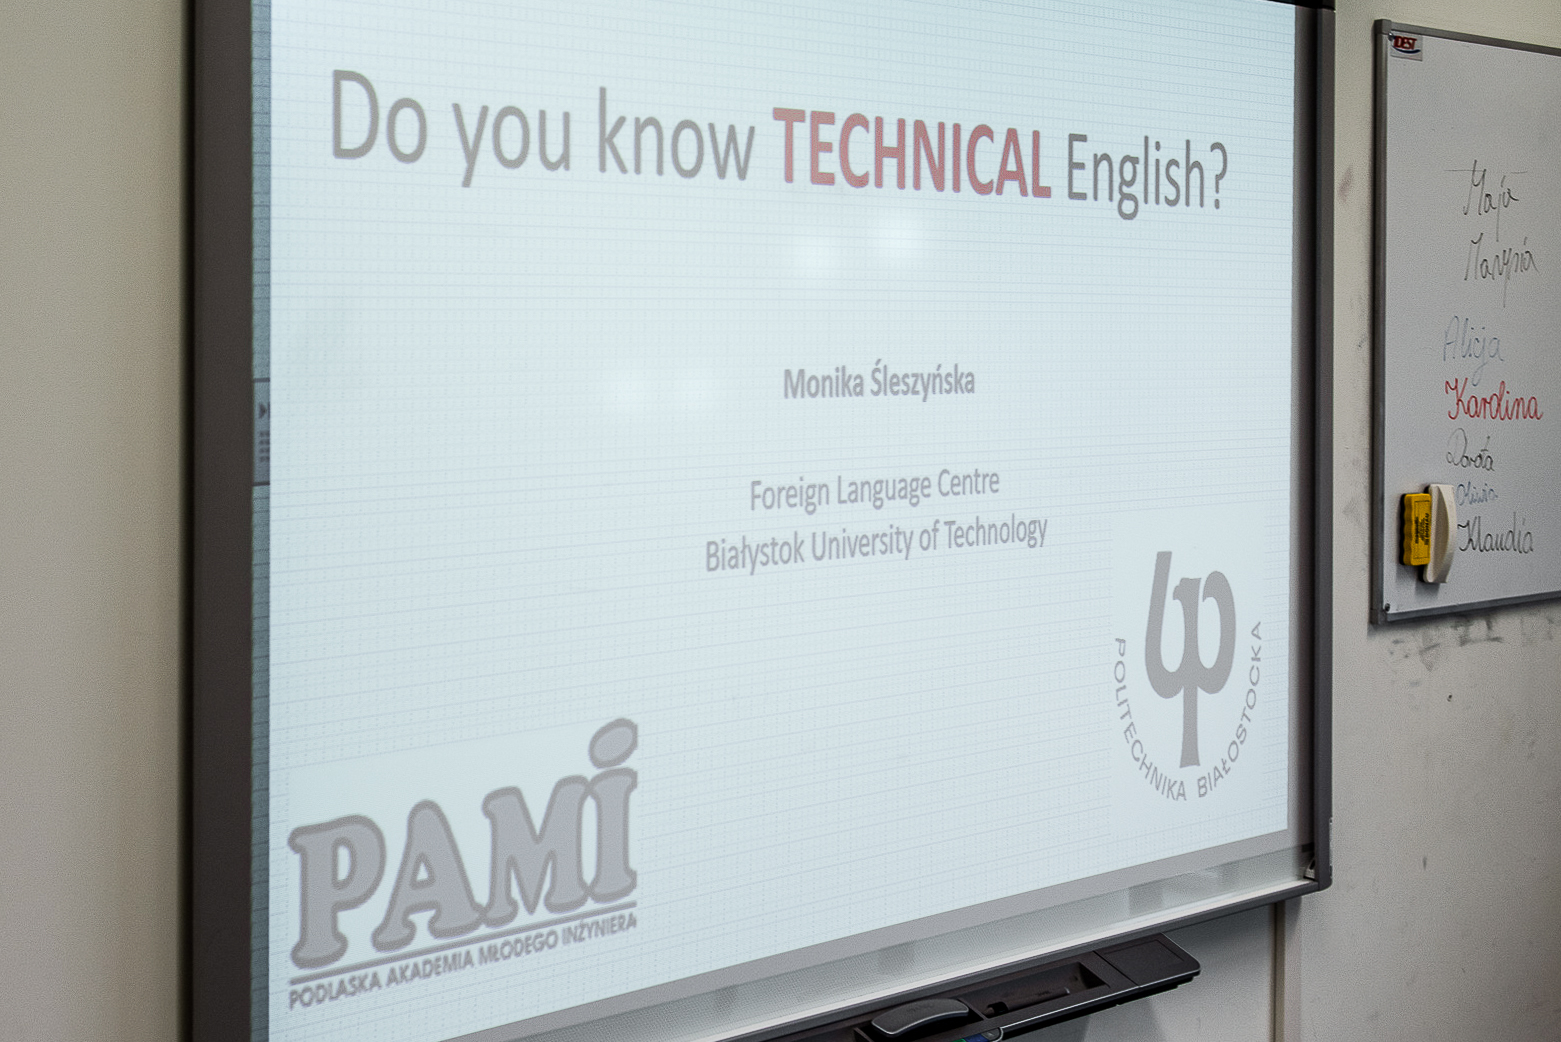 PAMI - Do you know technical English?